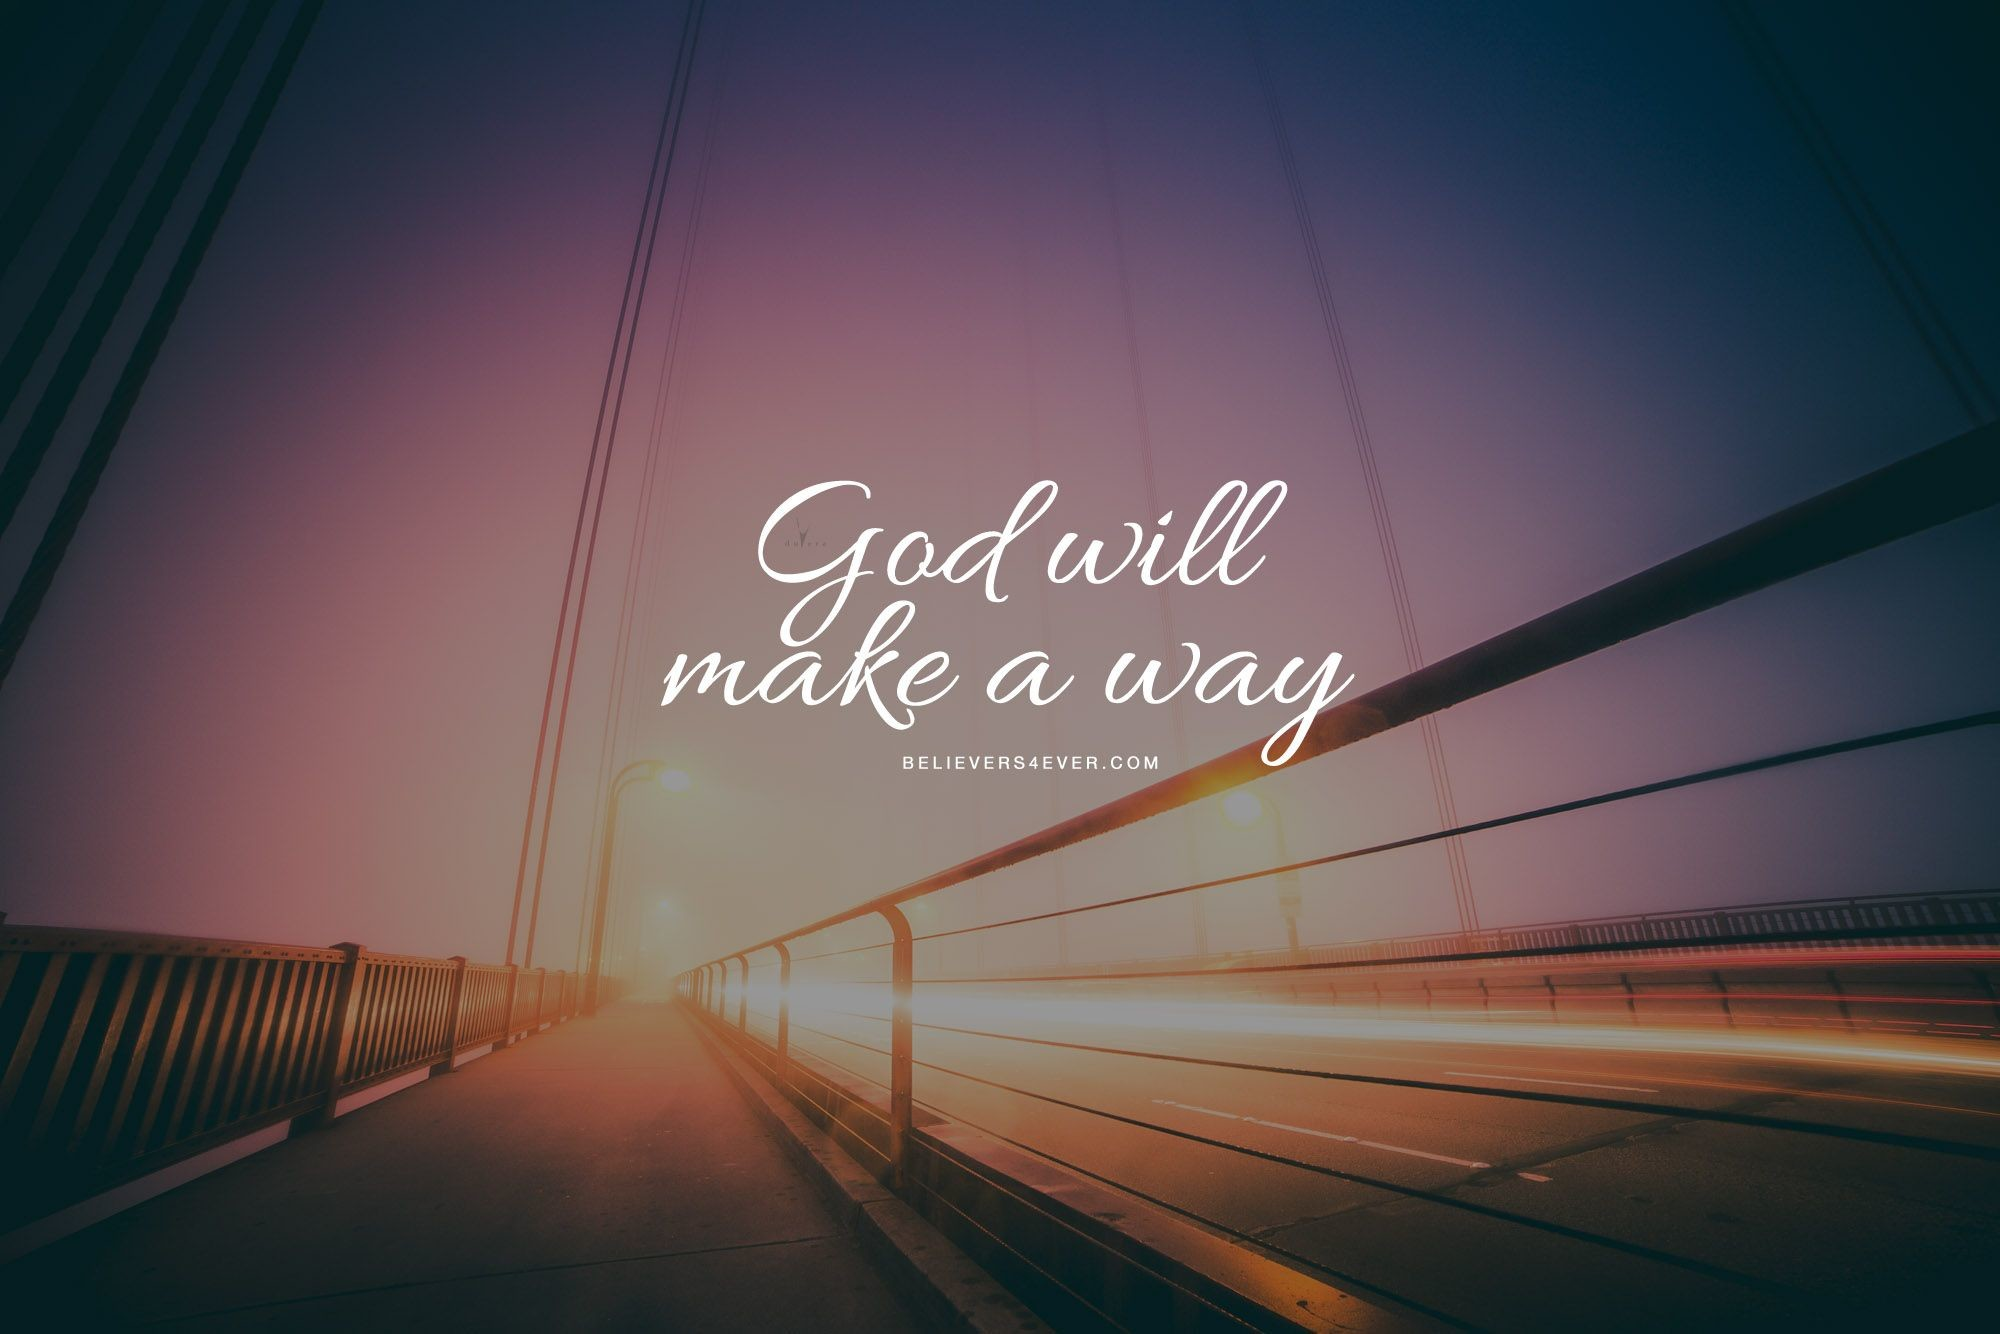 2000x1334 God will make a way. Free #Christian desktop HD #wallpaper and Christian  backgrounds for your personal use with #bible verse.